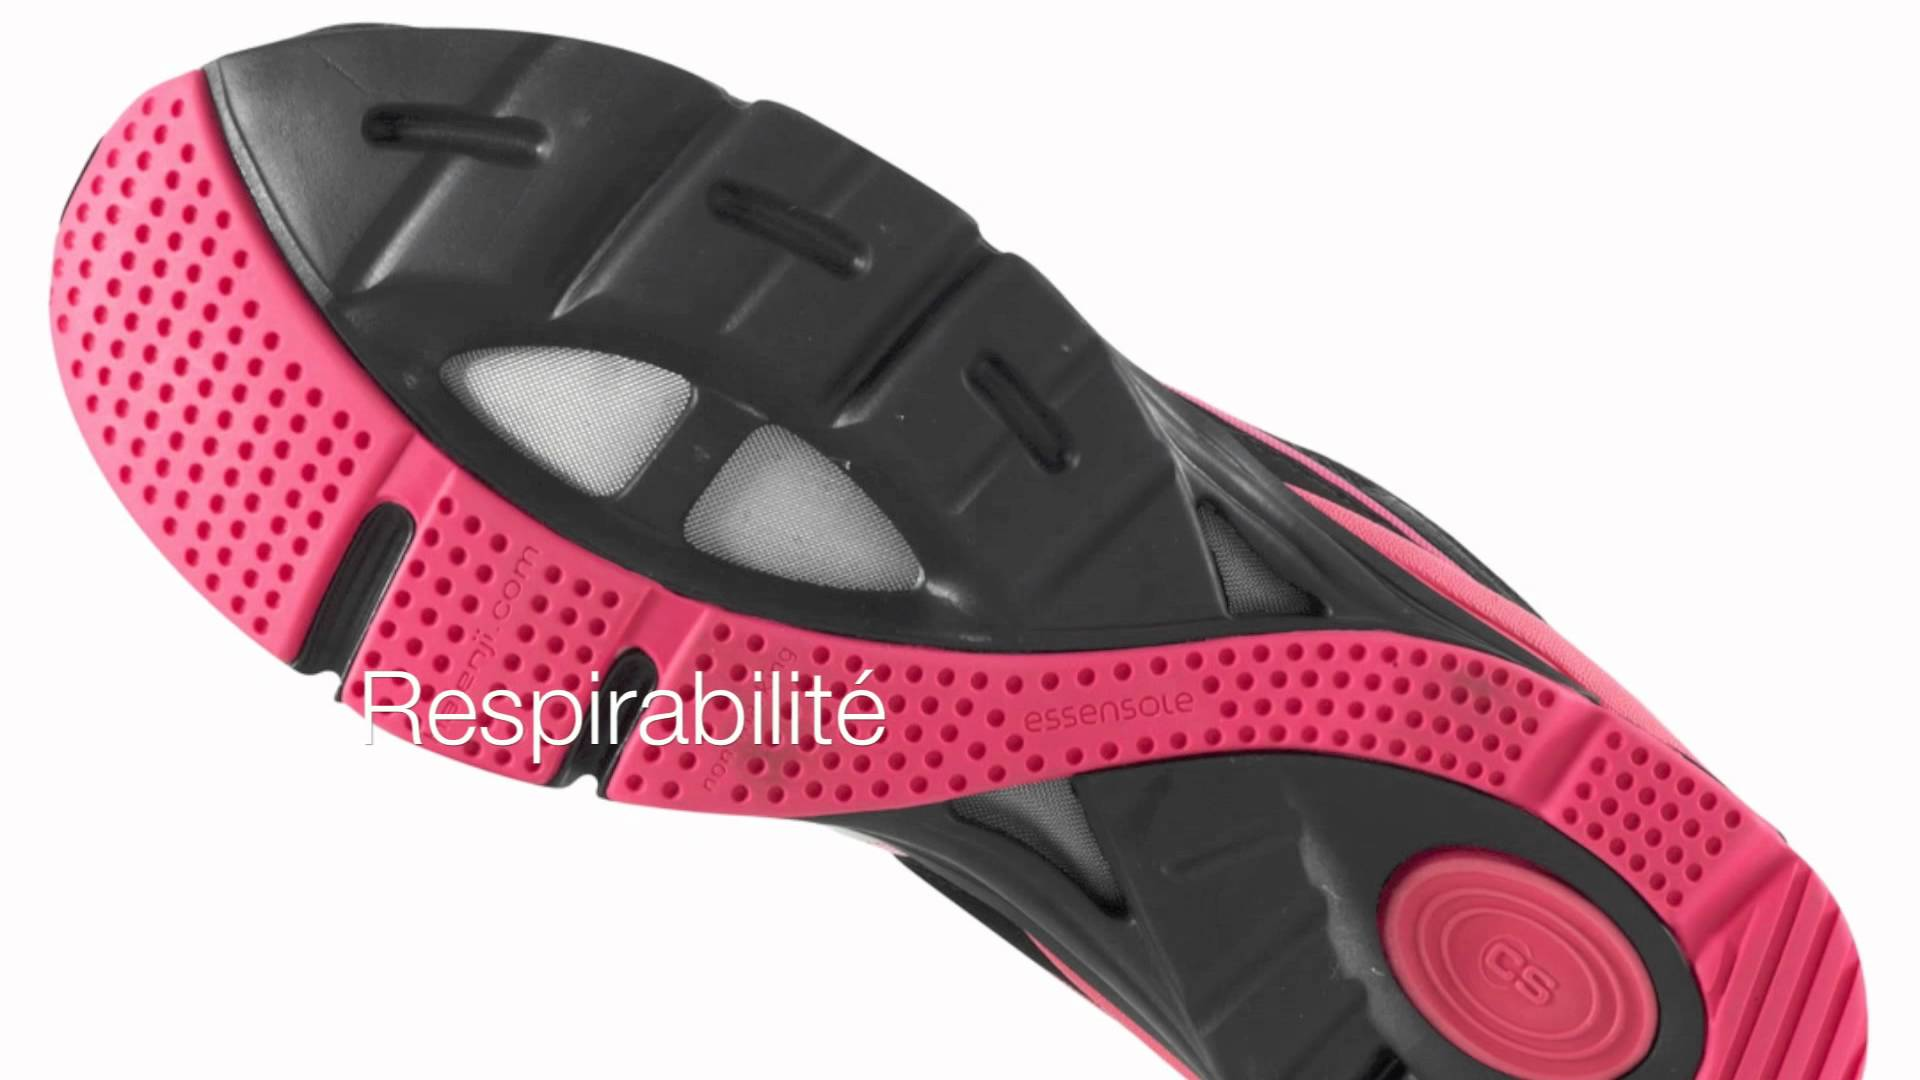 Tapis De Course Chez Decathlon Fille Decathlon Neige De Bottes Decathlon Closer Botte Xox8yn